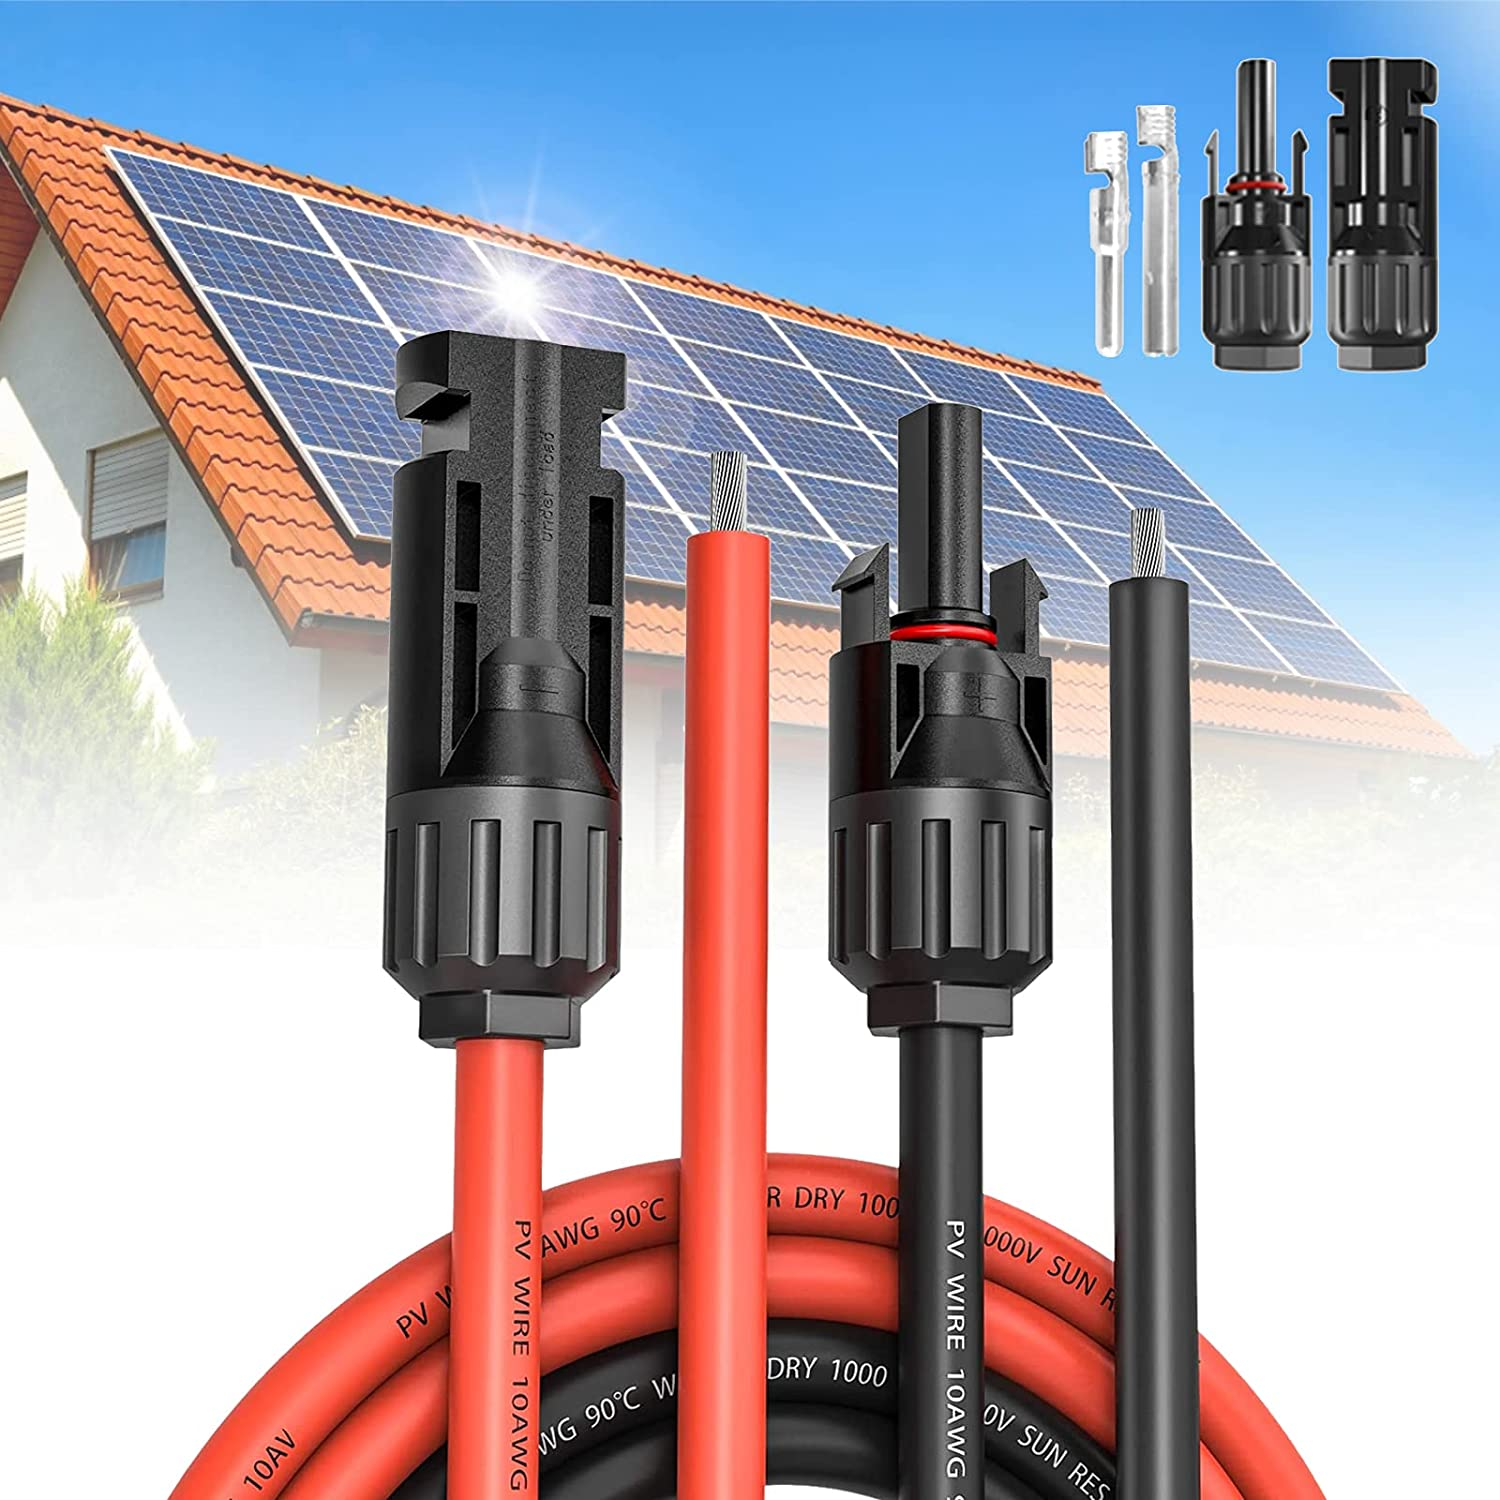 jamgoer New color 9Meters 12AWG Solar Extension Max 72% OFF Cable and Female with Male